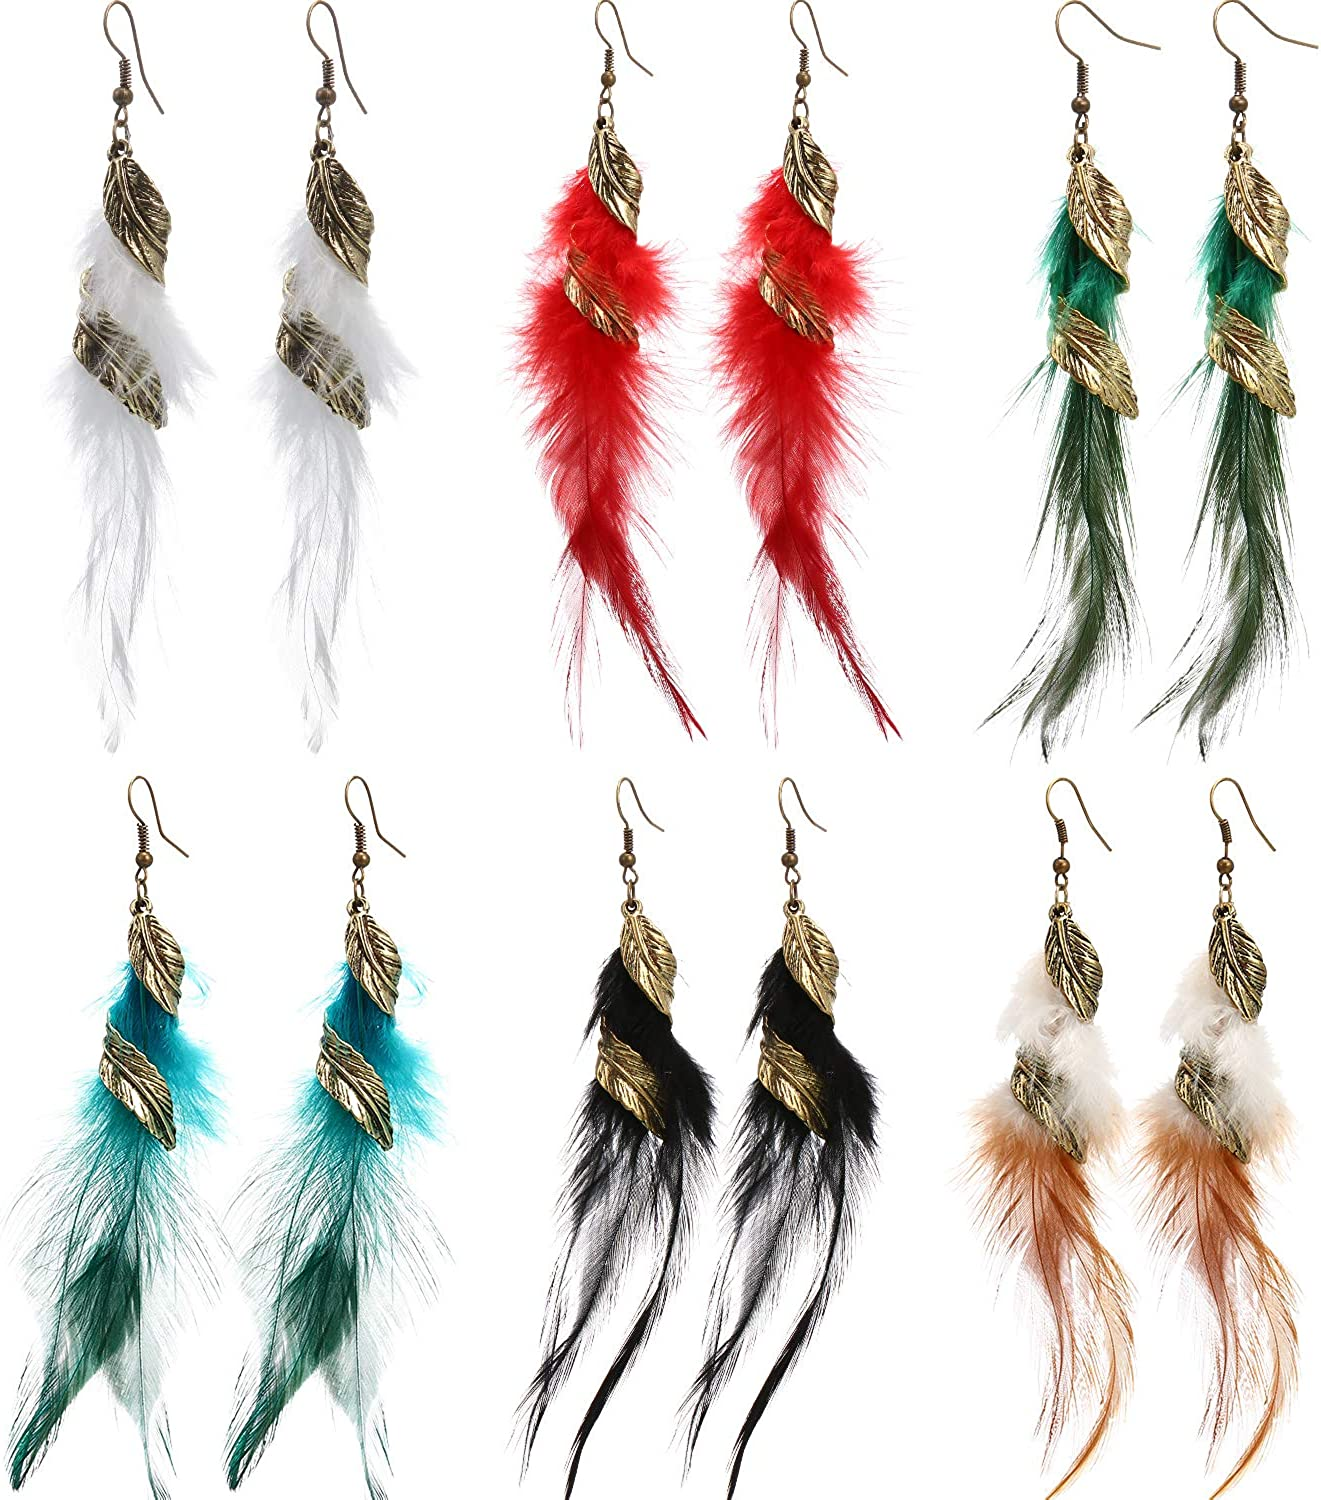 Colorful Bohemian Feather Dangle Drop Earring Gifts for Women Girls Jewelry000001000634